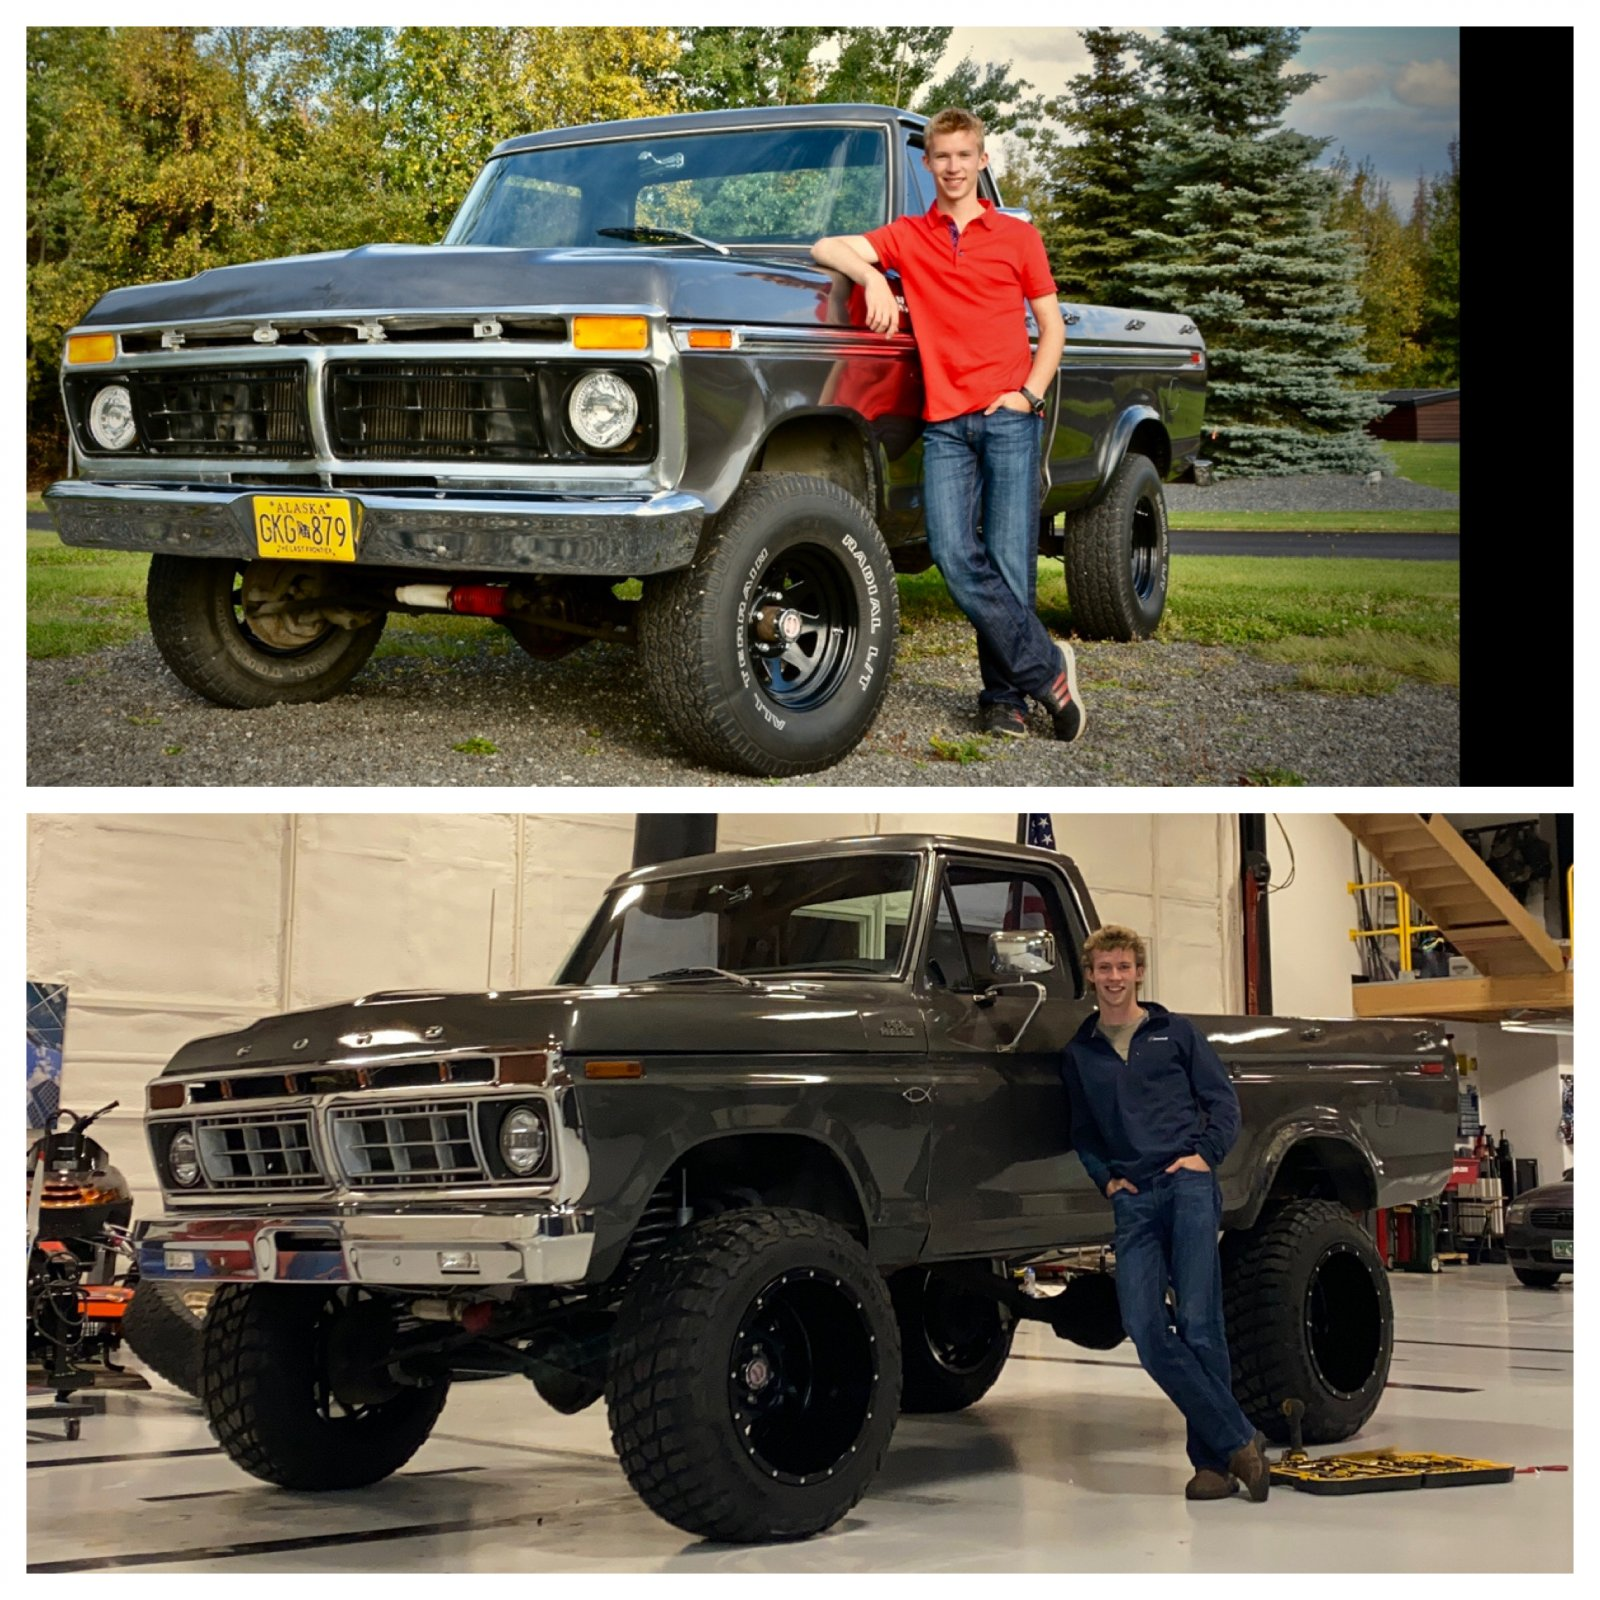 16 Year Old Built His Dream Truck 1977 Ford F150 6.jpeg